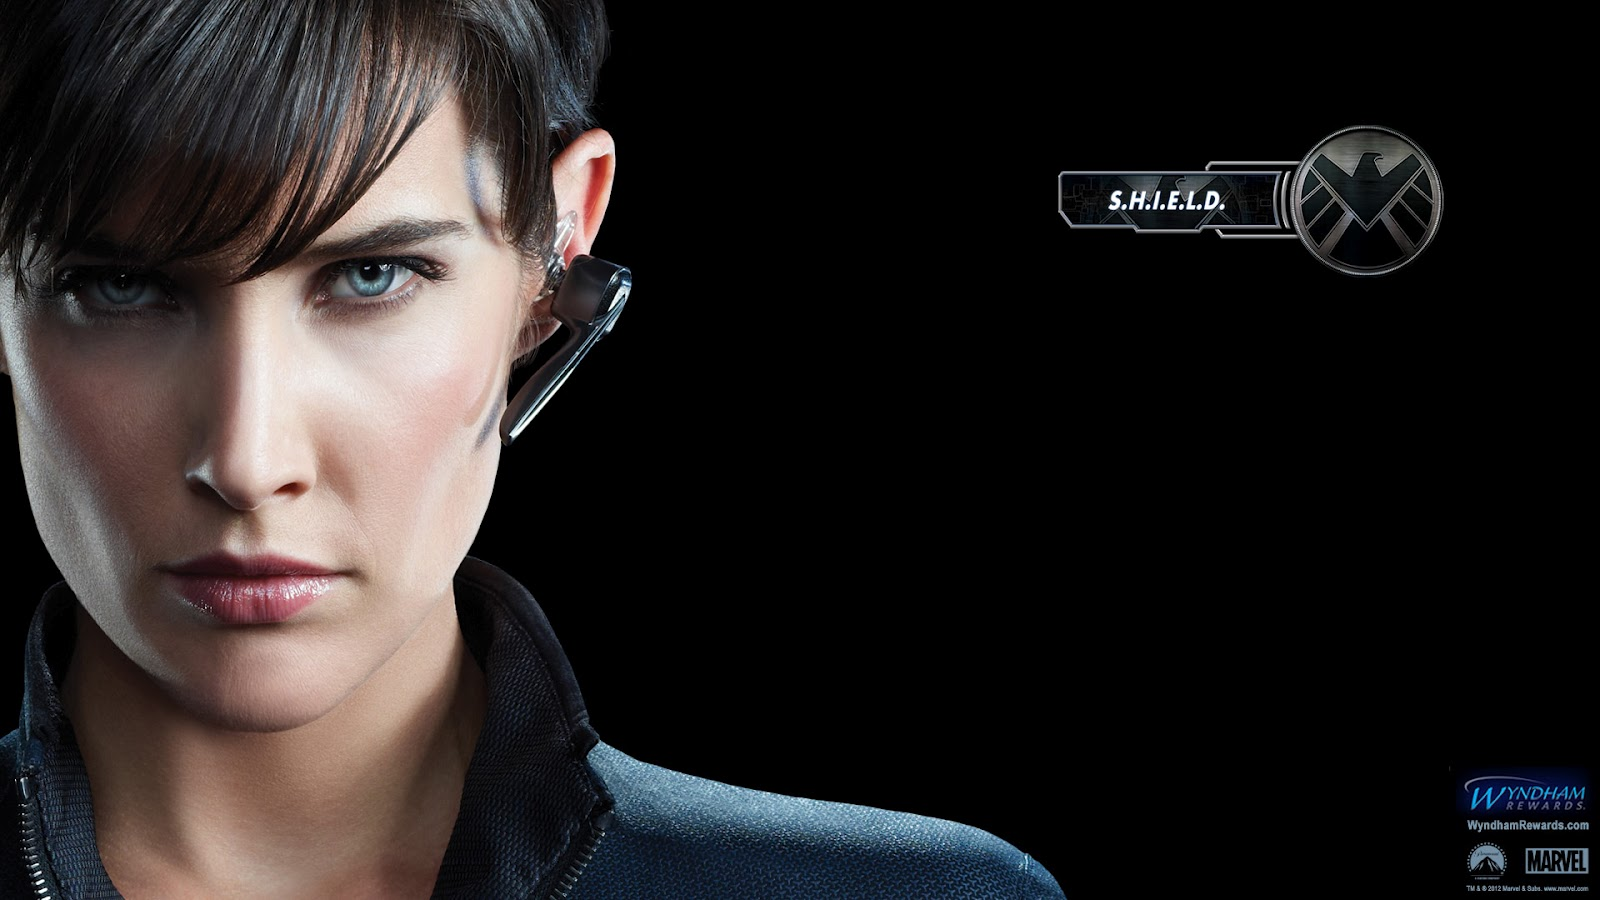 http://2.bp.blogspot.com/-pleOqvw-11k/T7GB-omMBXI/AAAAAAAAASE/dNQjXG7N8ao/s1600/Agent-Maria-Hill-full-hd-wallpaper-the-avengers-movie-Cobie-Smulders-download.jpg